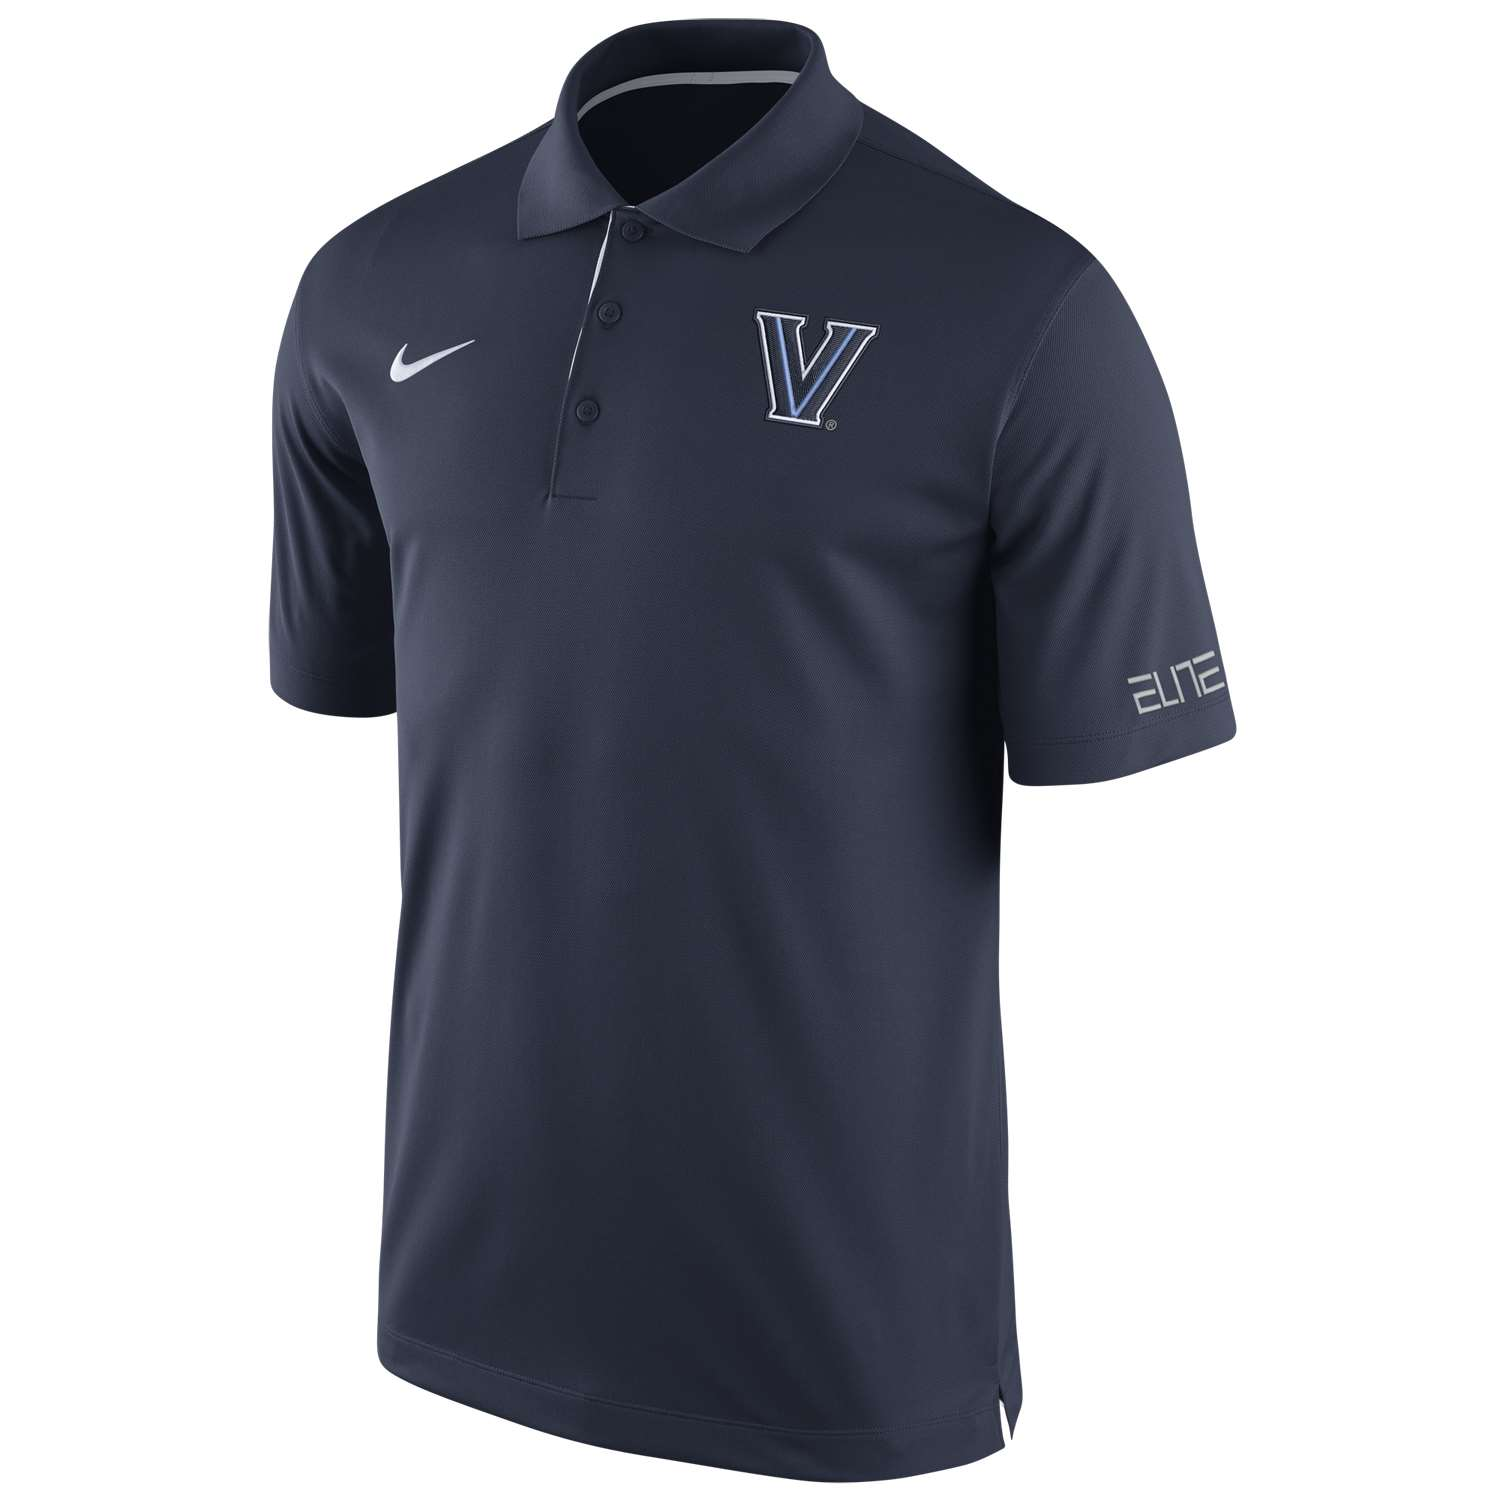 nike villanova wildcats dri fit performance polo shirt. Black Bedroom Furniture Sets. Home Design Ideas